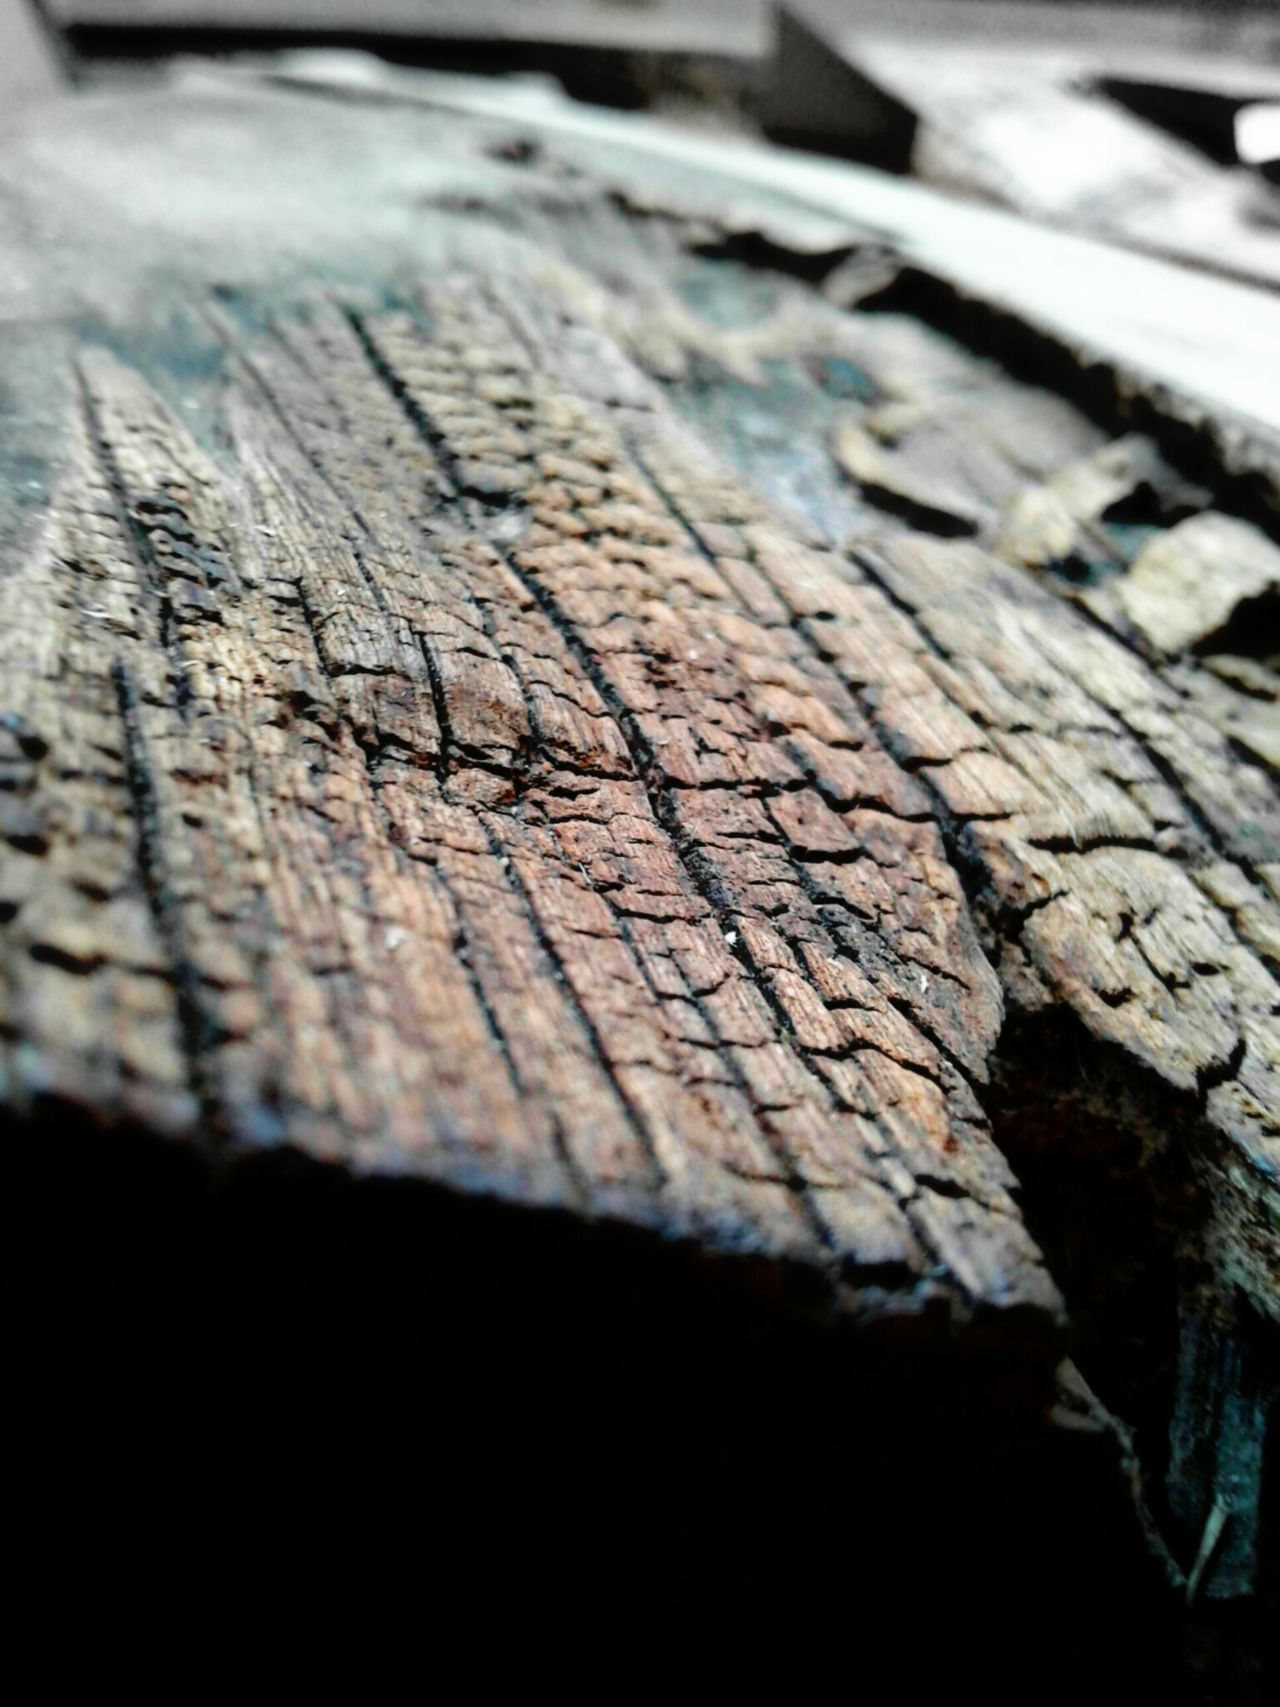 Wood - Material Selective Focus Textured  Plank Surface Level Wooden Close-up Cracked Weathered Tree Trunk Nature Day No People Non-urban Scene Tronco Madera Wood